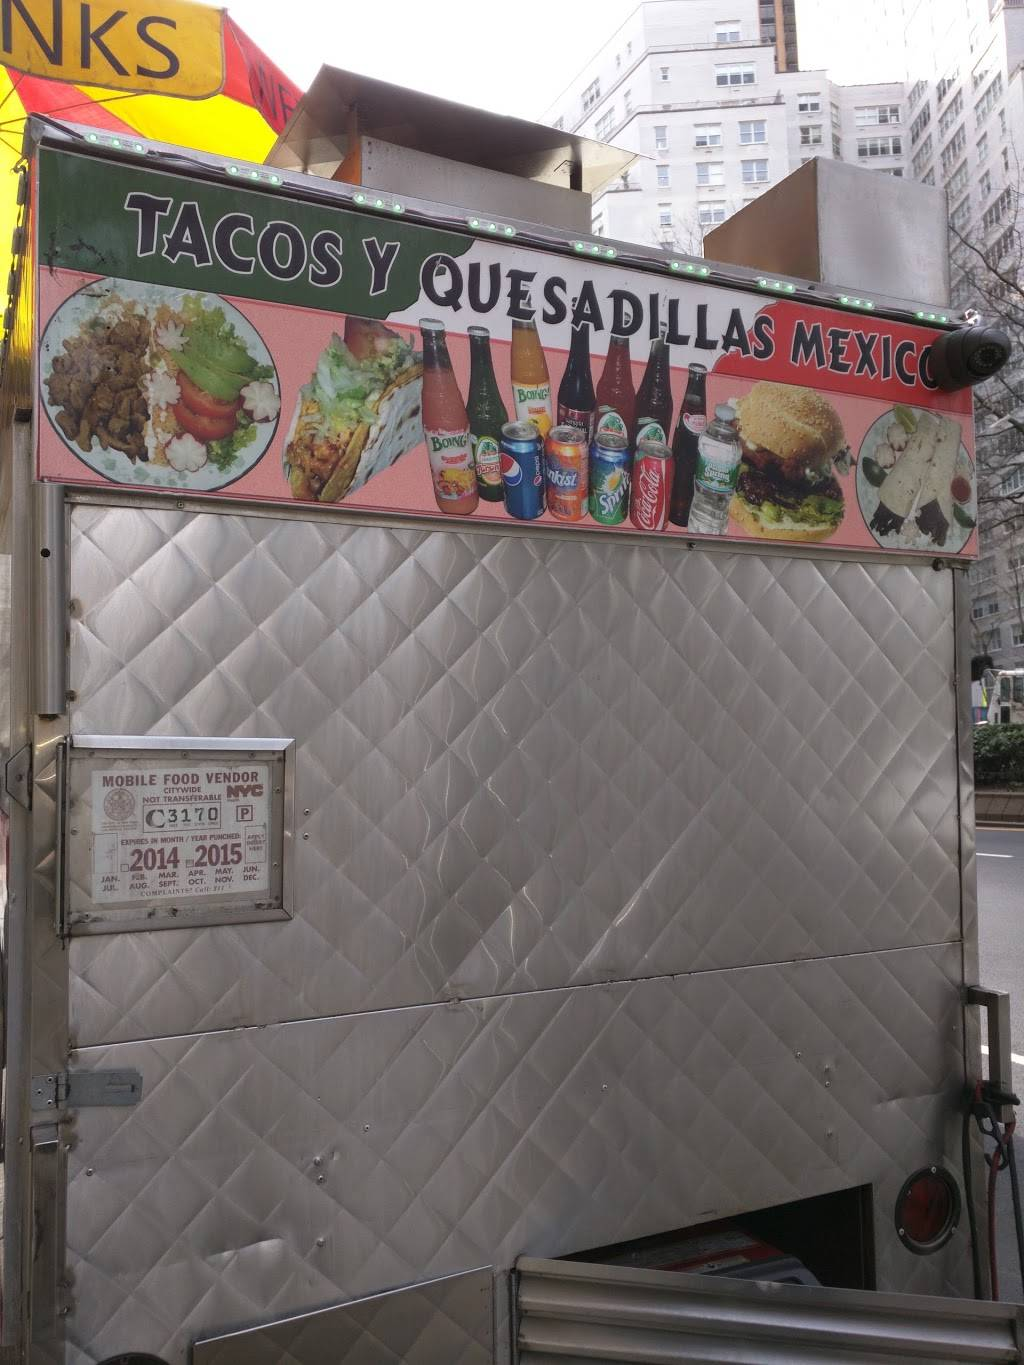 Tacos Y Quesadillas Mexico (Food Truck) | restaurant | 2030 Broadway, New York, NY 10023, USA | 3478467413 OR +1 347-846-7413